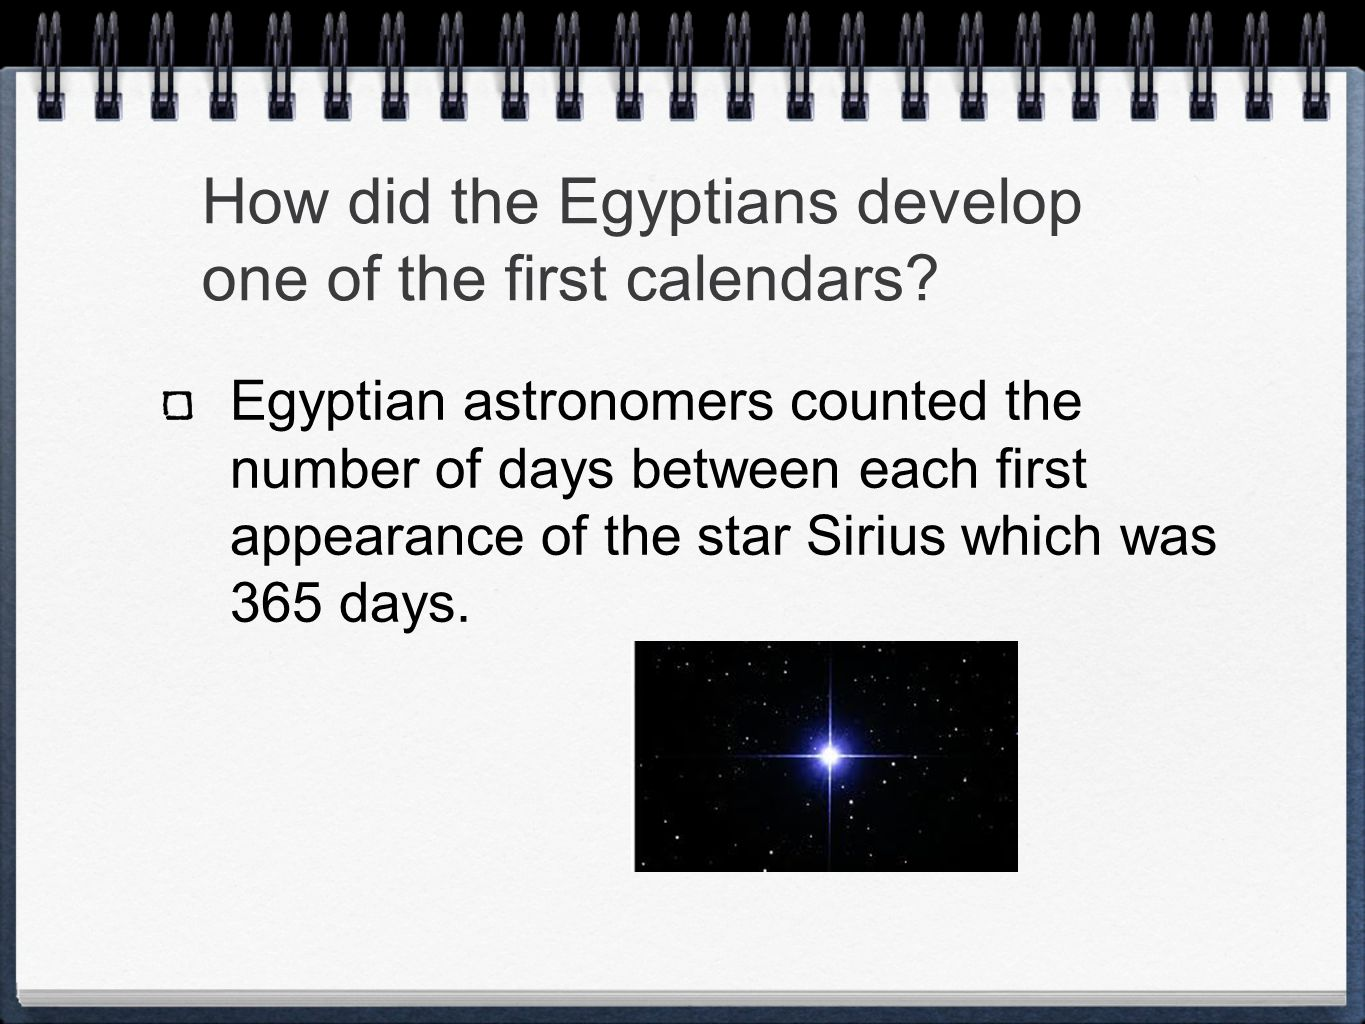 How did the Egyptians develop one of the first calendars